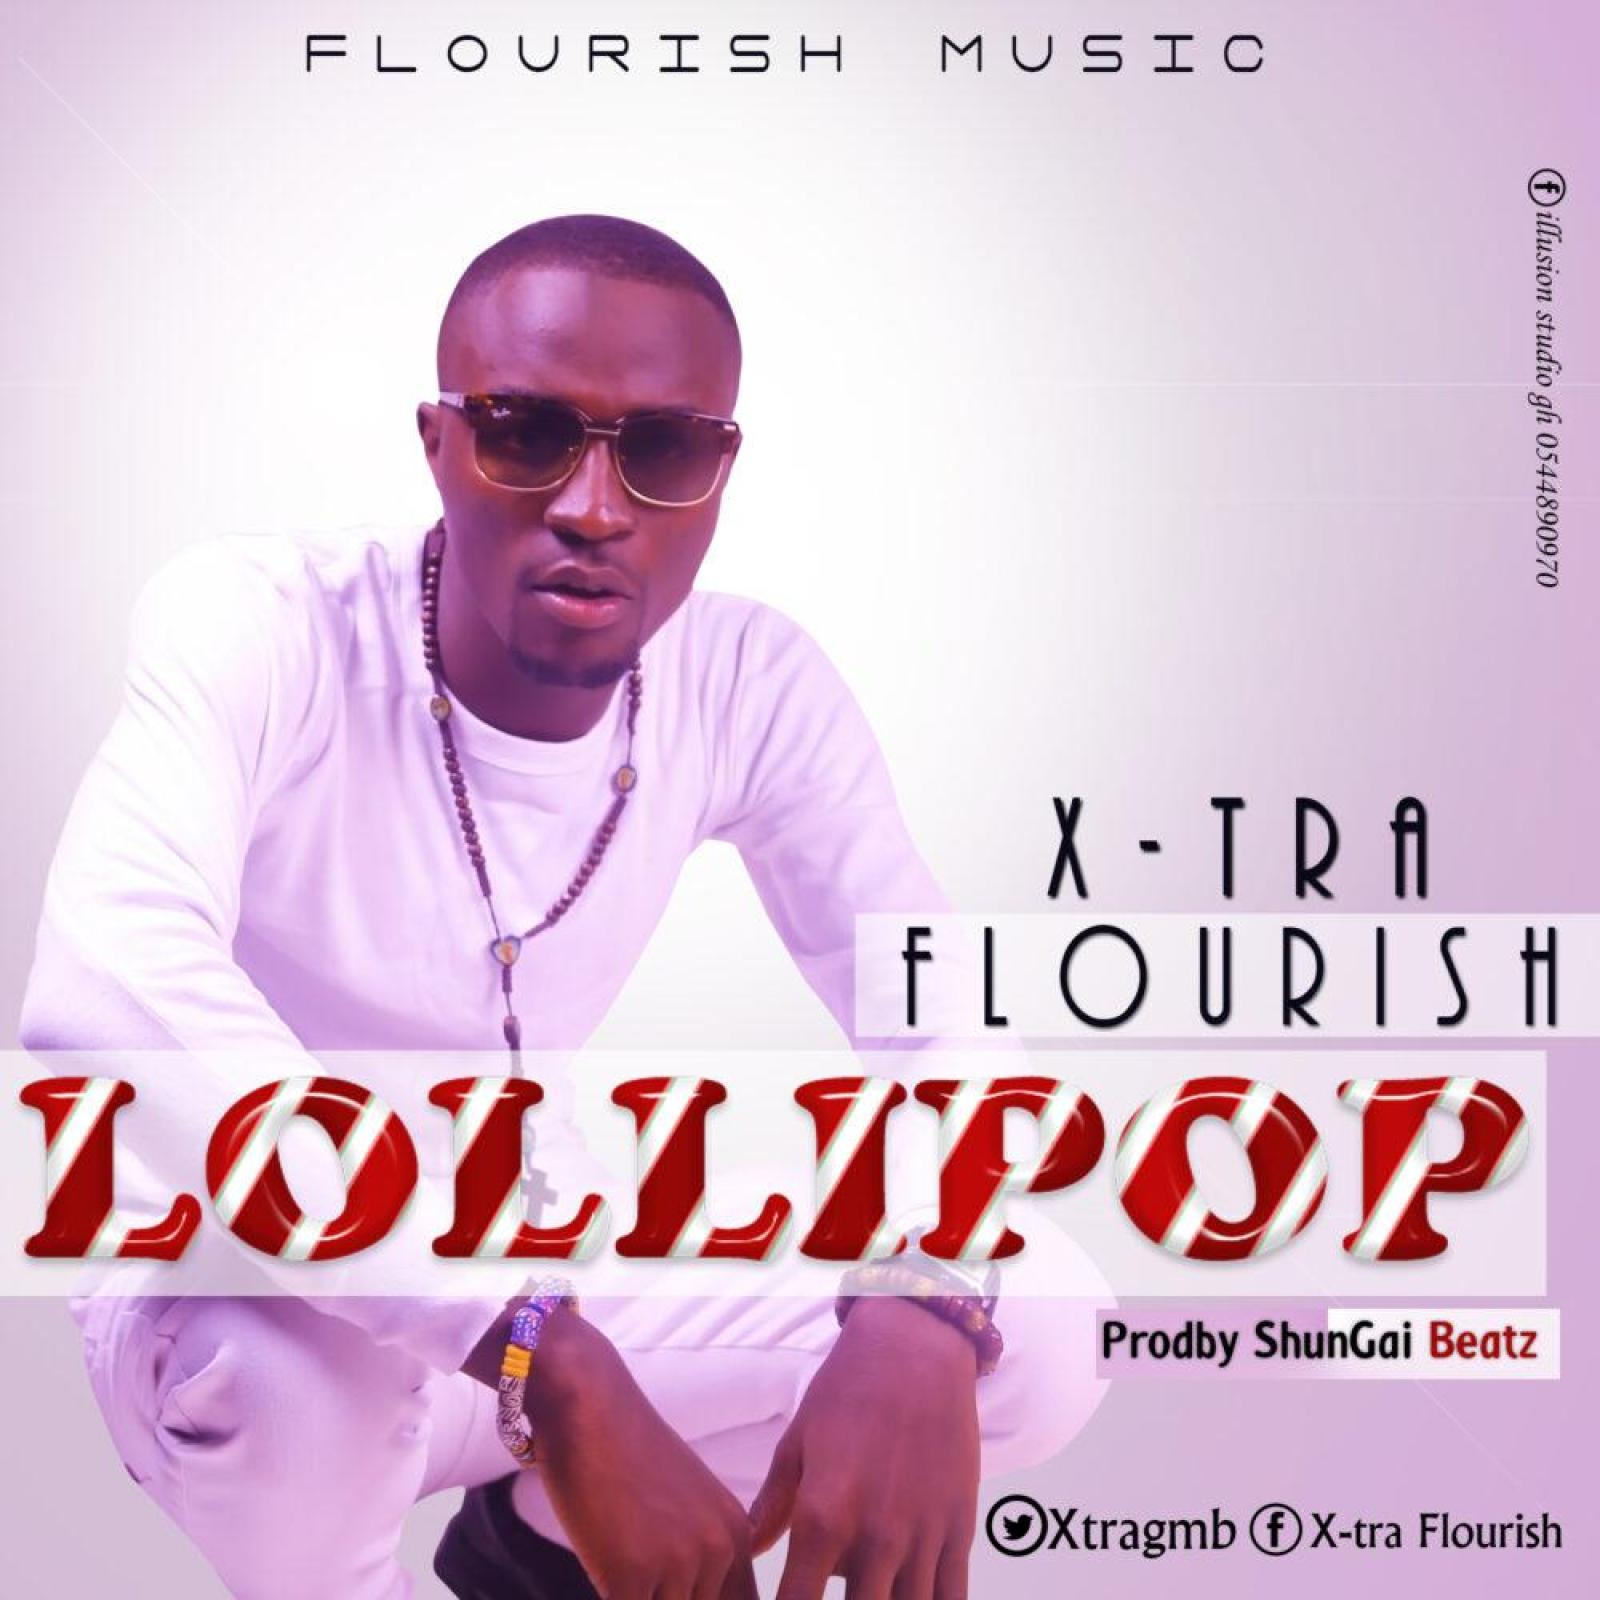 X-Tra Flourish -LOLLIPOP (prodby Shanghai Beatz)